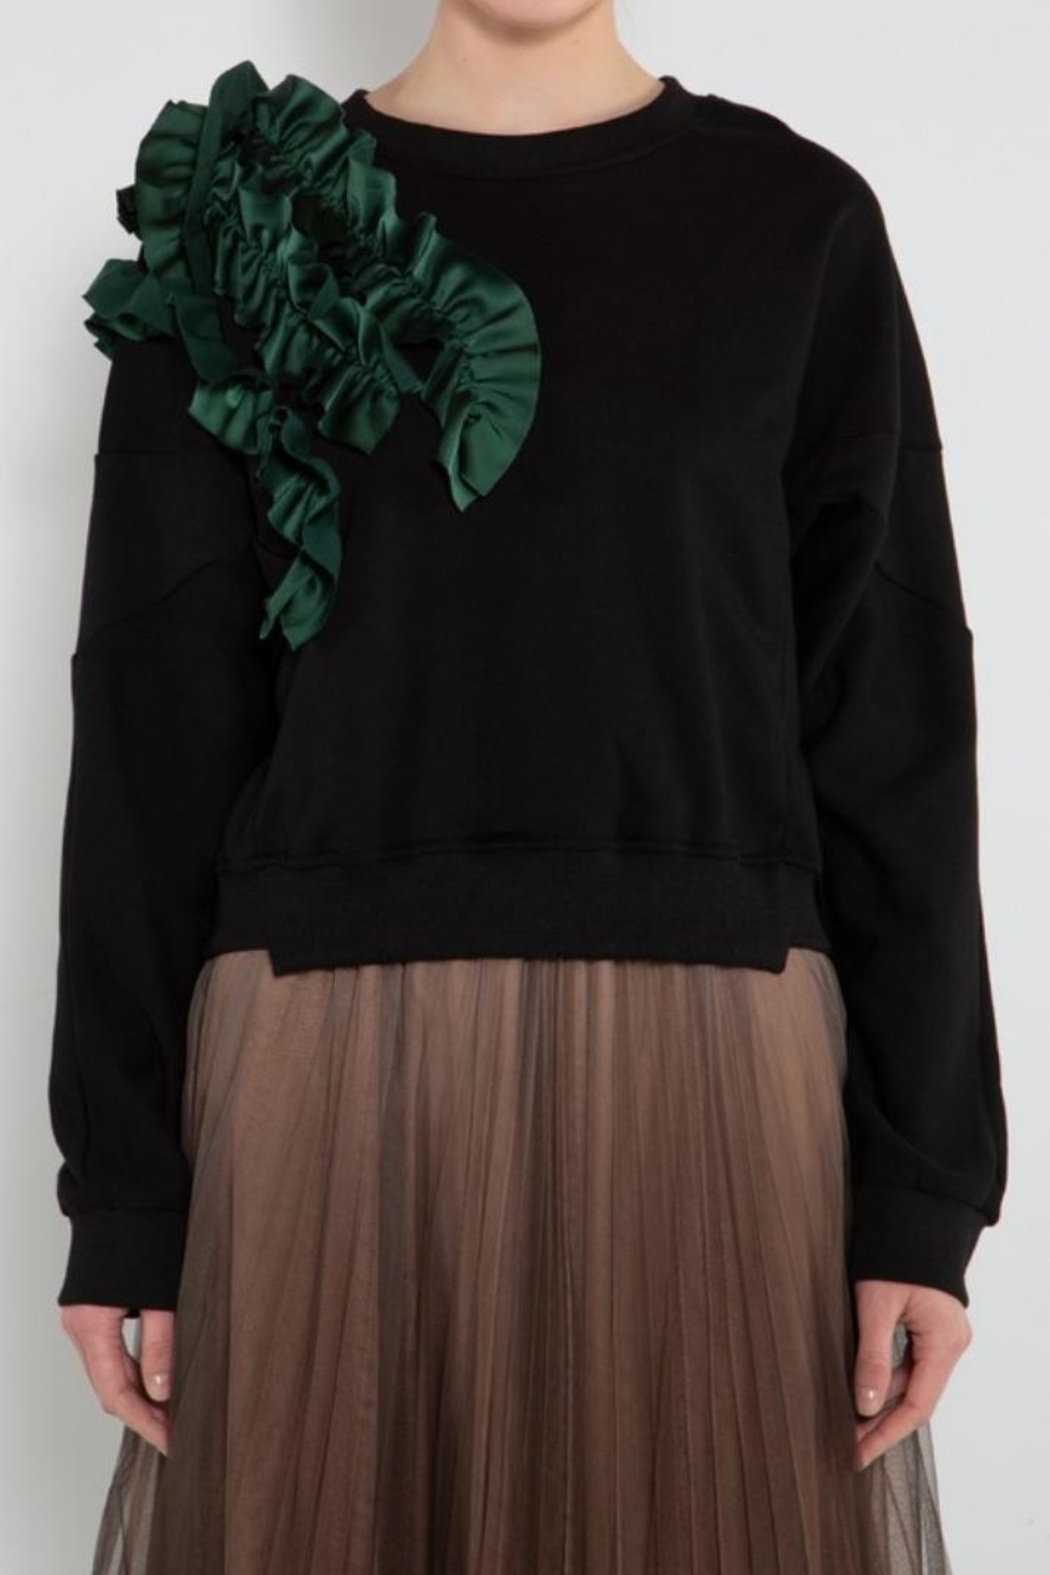 BEULAH STYLE Green Ruffle Sweater - Side Cropped Image